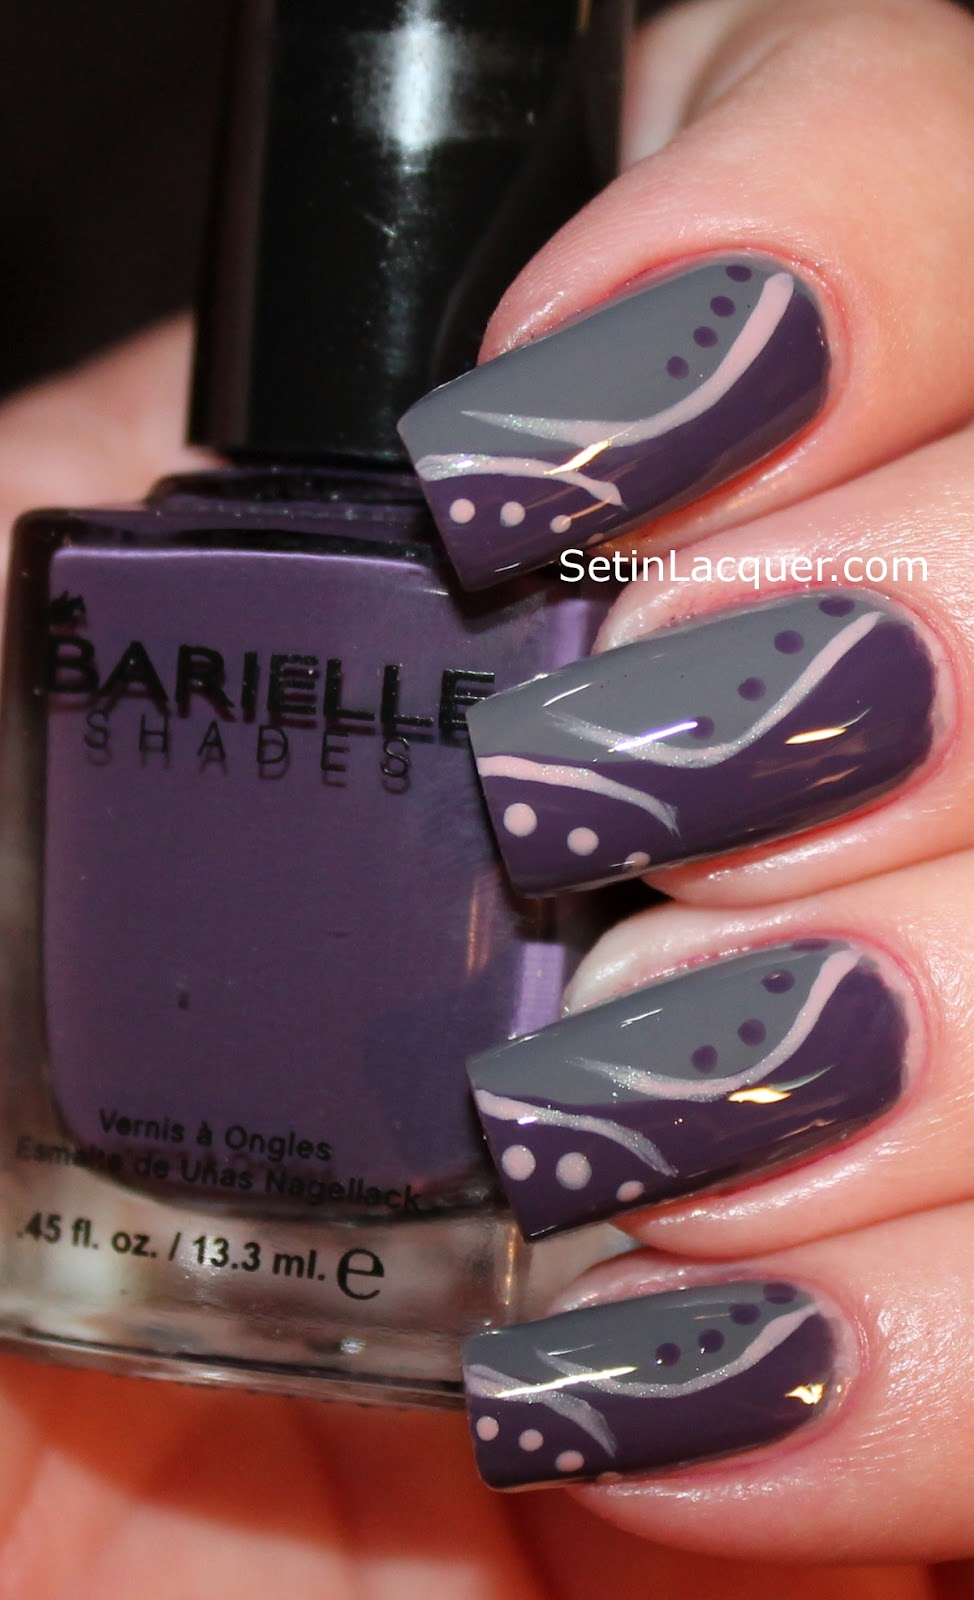 Set in Lacquer: striping